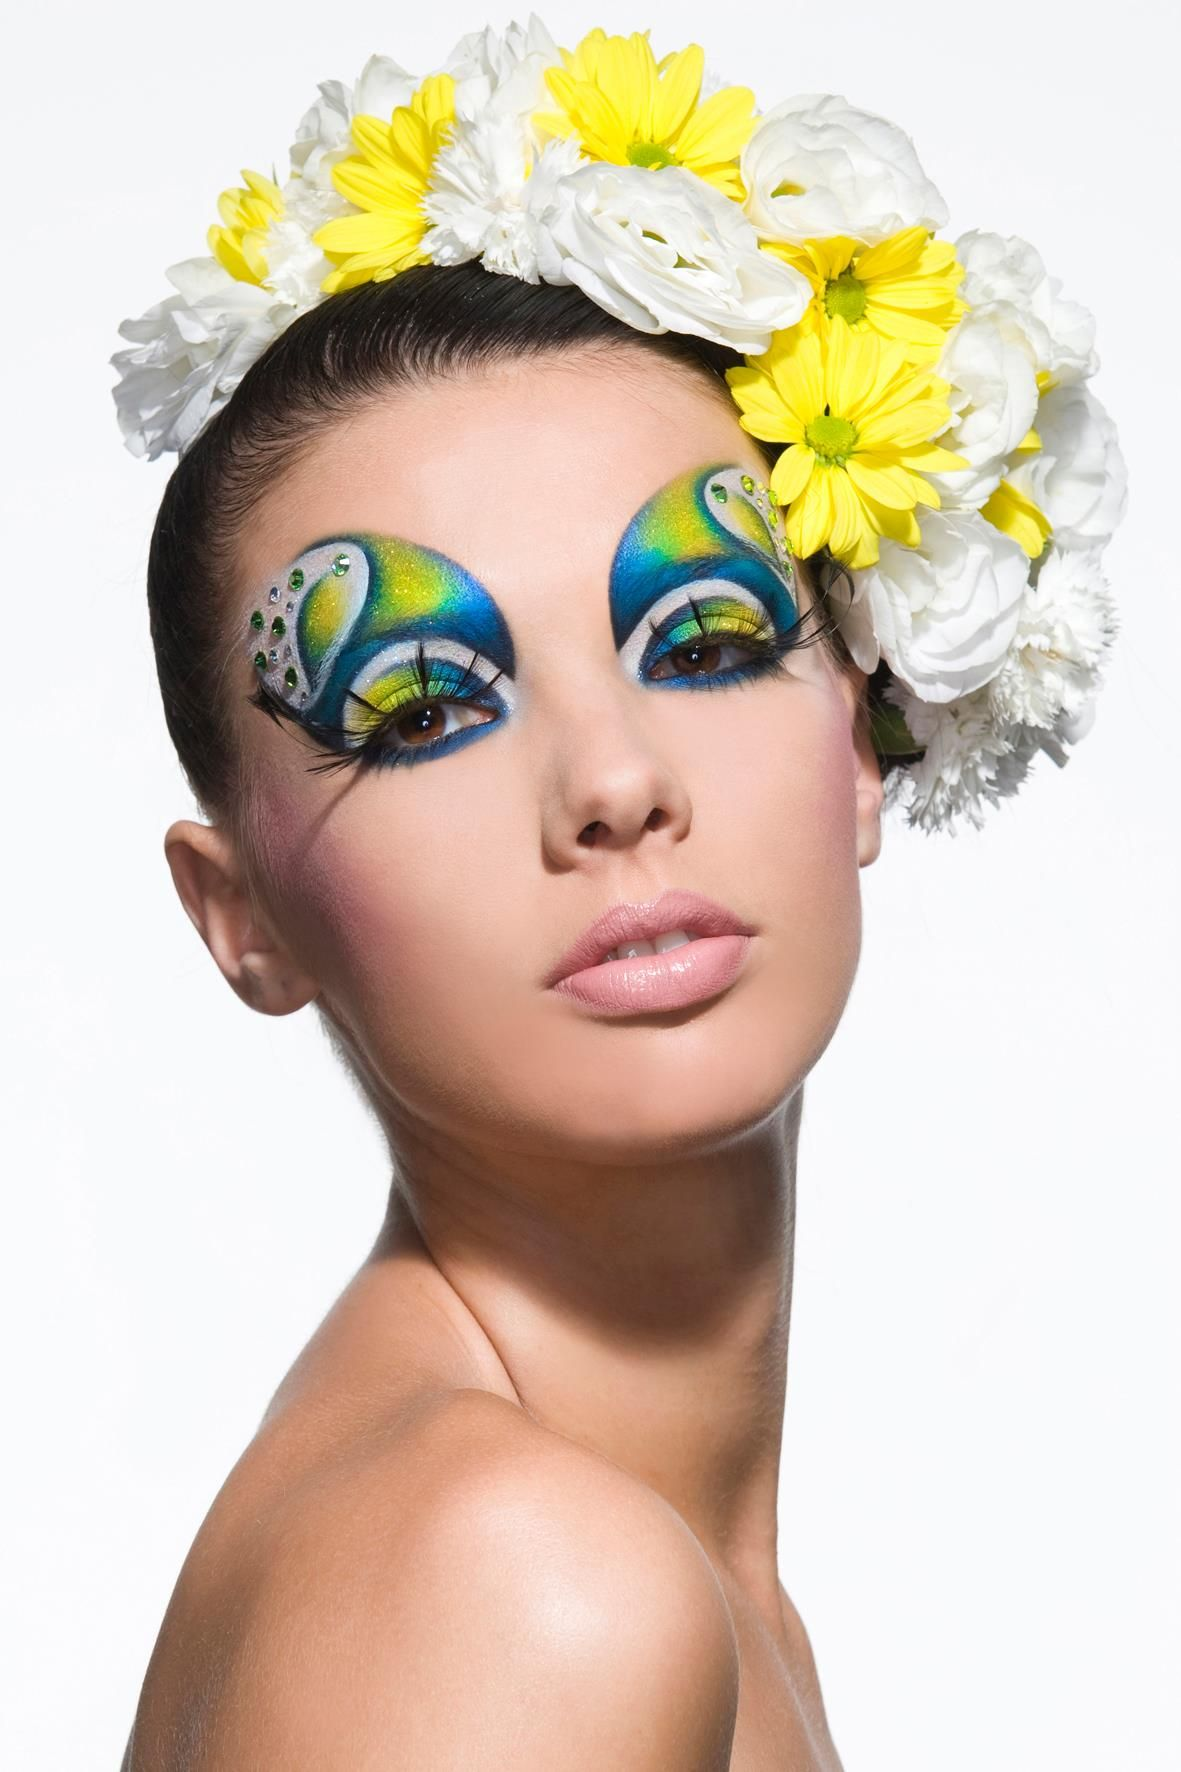 Eye Makeup Ideas Spring Beauty and Make Up Pictures